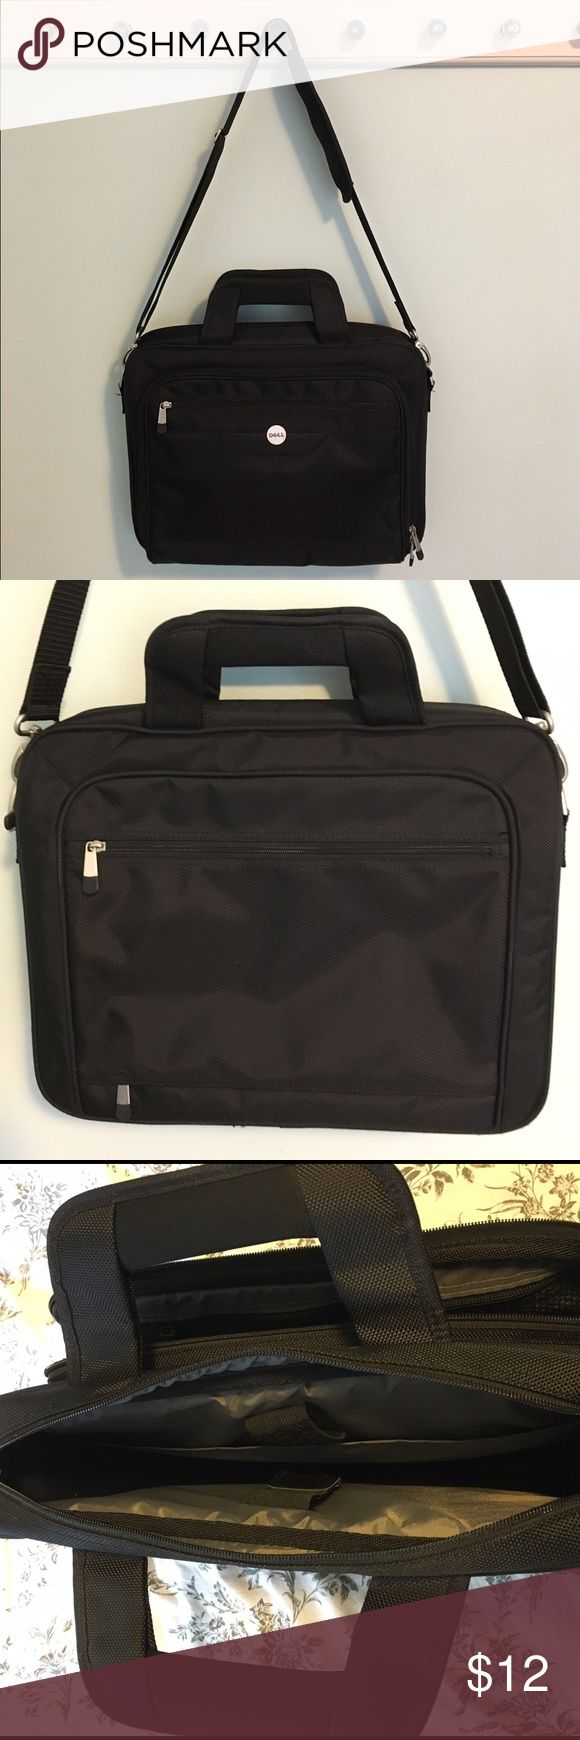 """Dell Laptop Bag Black Dell laptop bag. Comes with a padded shoulder strap. Inside laptop pocket has padding at the bottom to protect your device. Side storage pocket has sections for pens, business cards, etc. Great condition. All zippers work. No rips or snags. Only show of wear is a few scratches on the silver hardware. Outer dimensions approximately 16"""" x 5"""" x 13"""". All my items come from a smoke free home. Dell Bags Laptop Bags"""